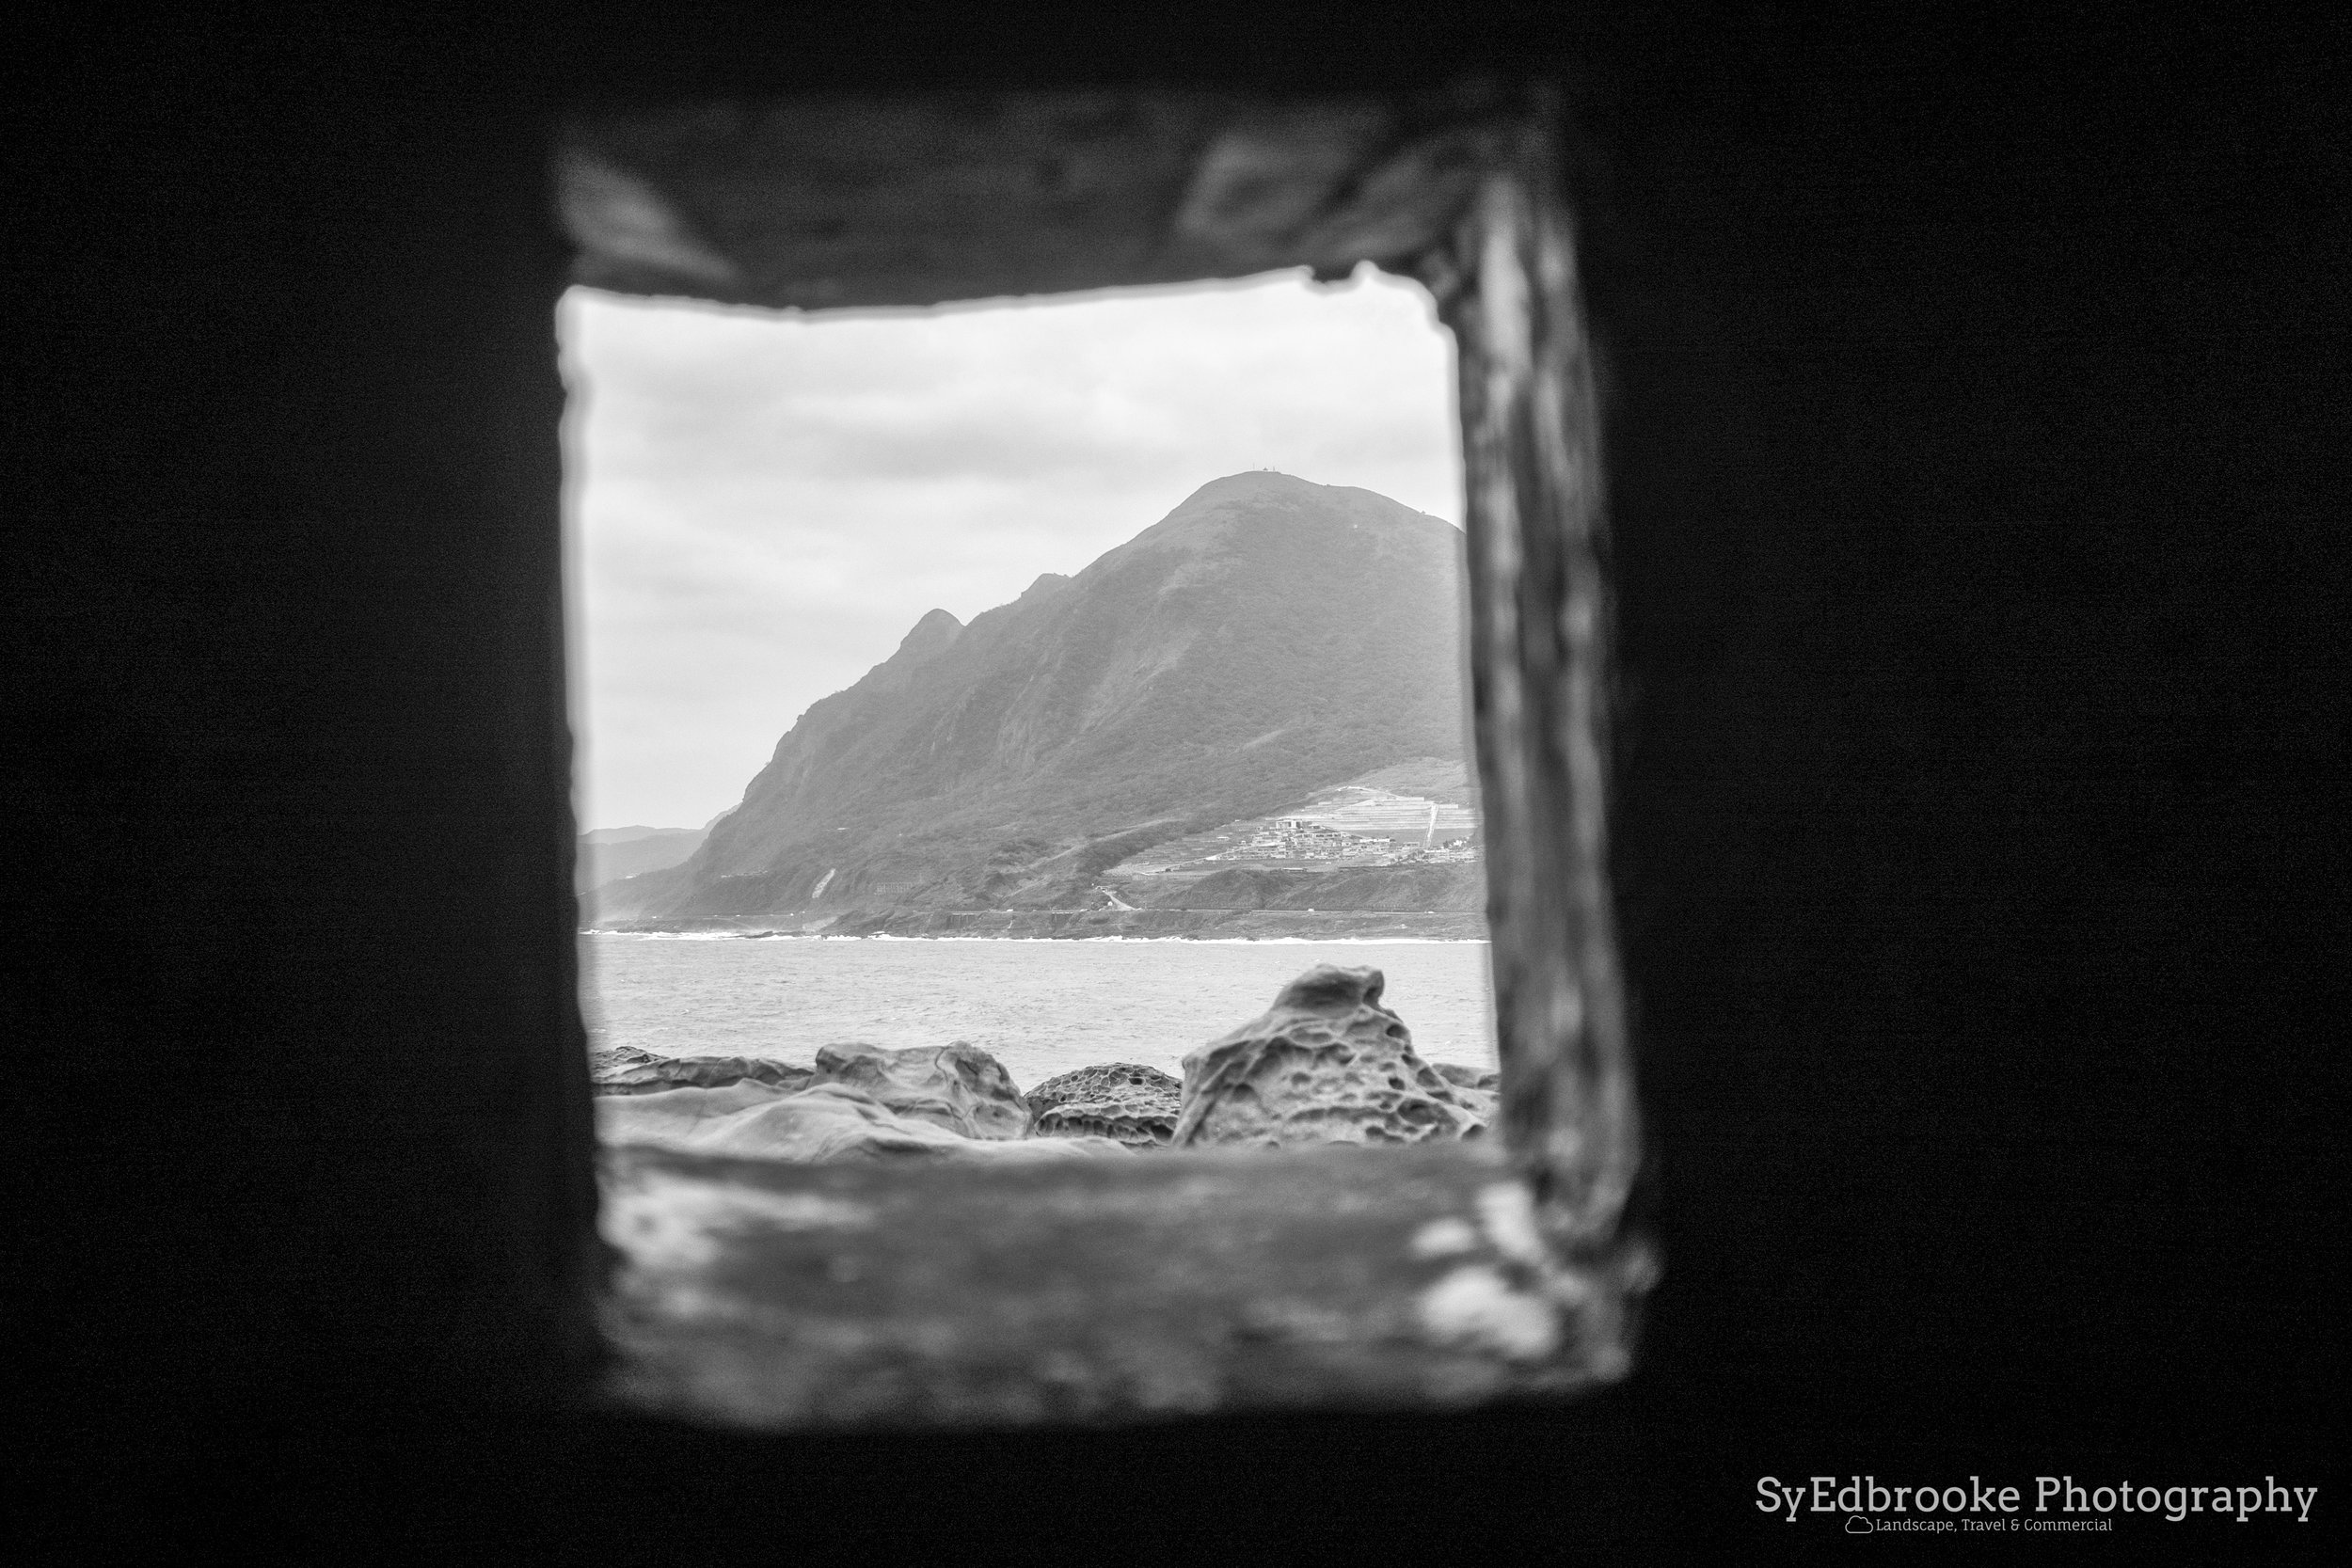 View from the Bunker window. f1.8, ISO 200, 1/320, 35mm